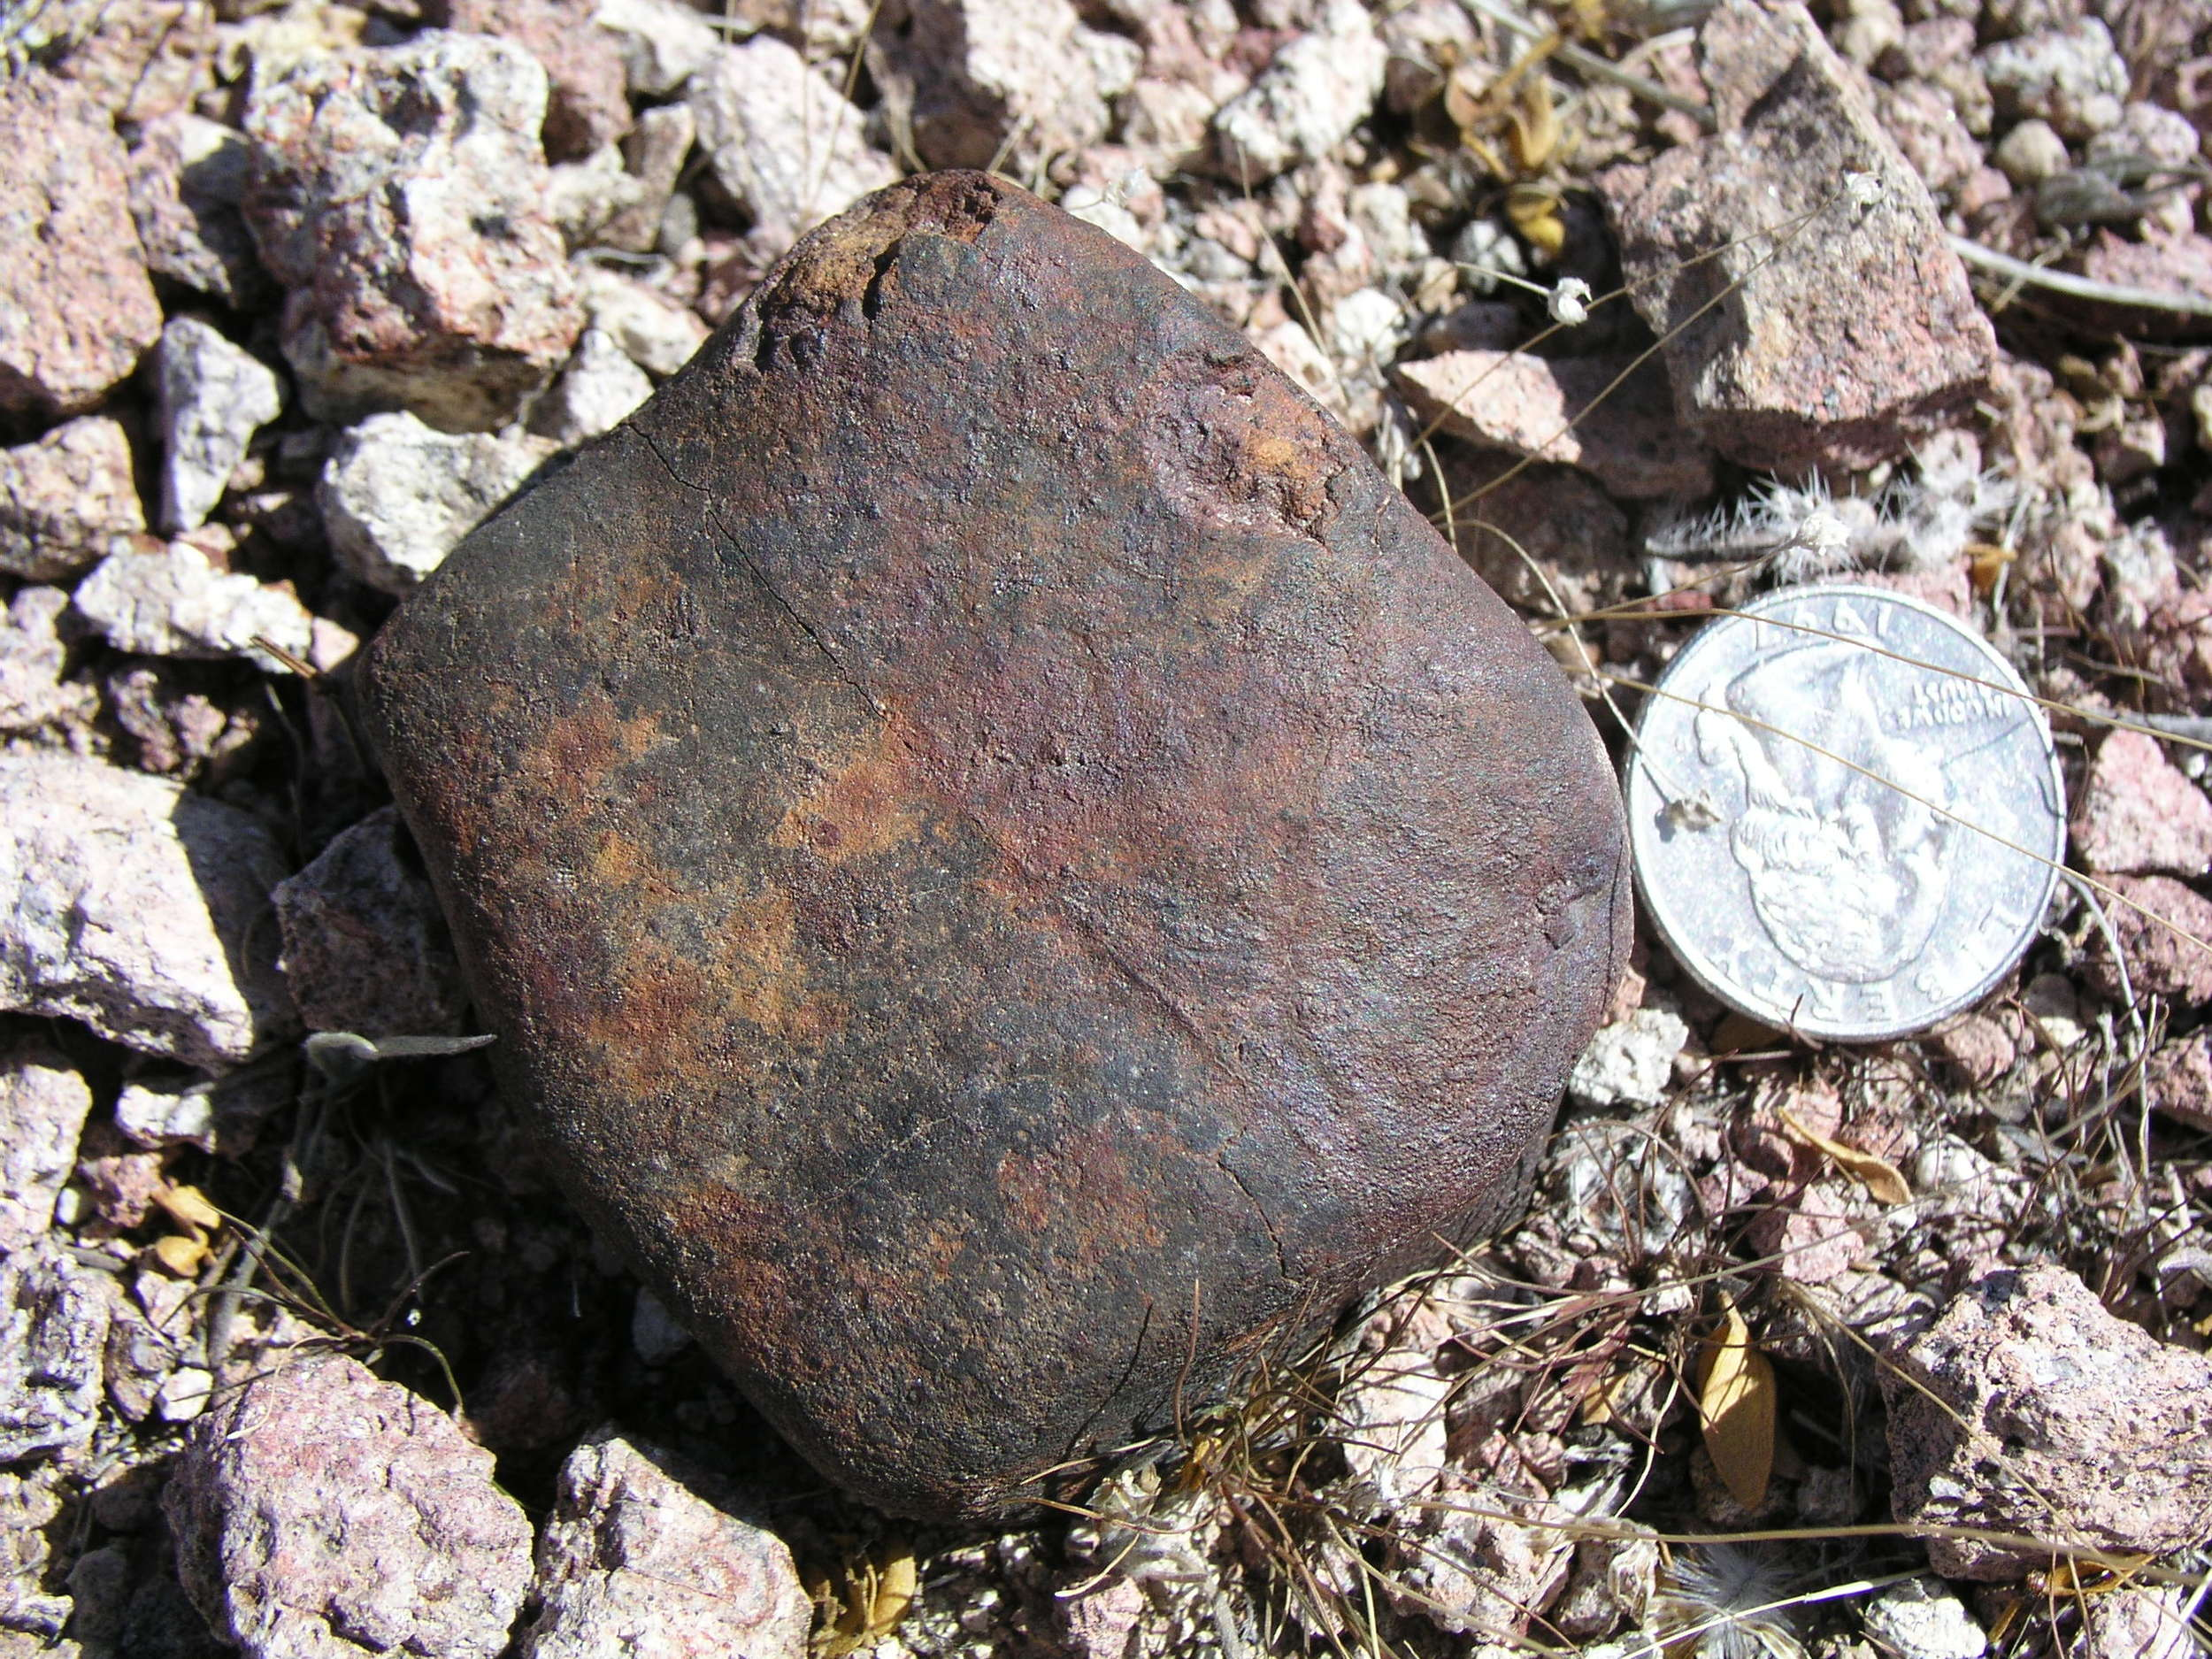 My 251.6 gram. I found it just feet from where 1970's era prospectors had been working. I'm sure this stone was setting there at that time.